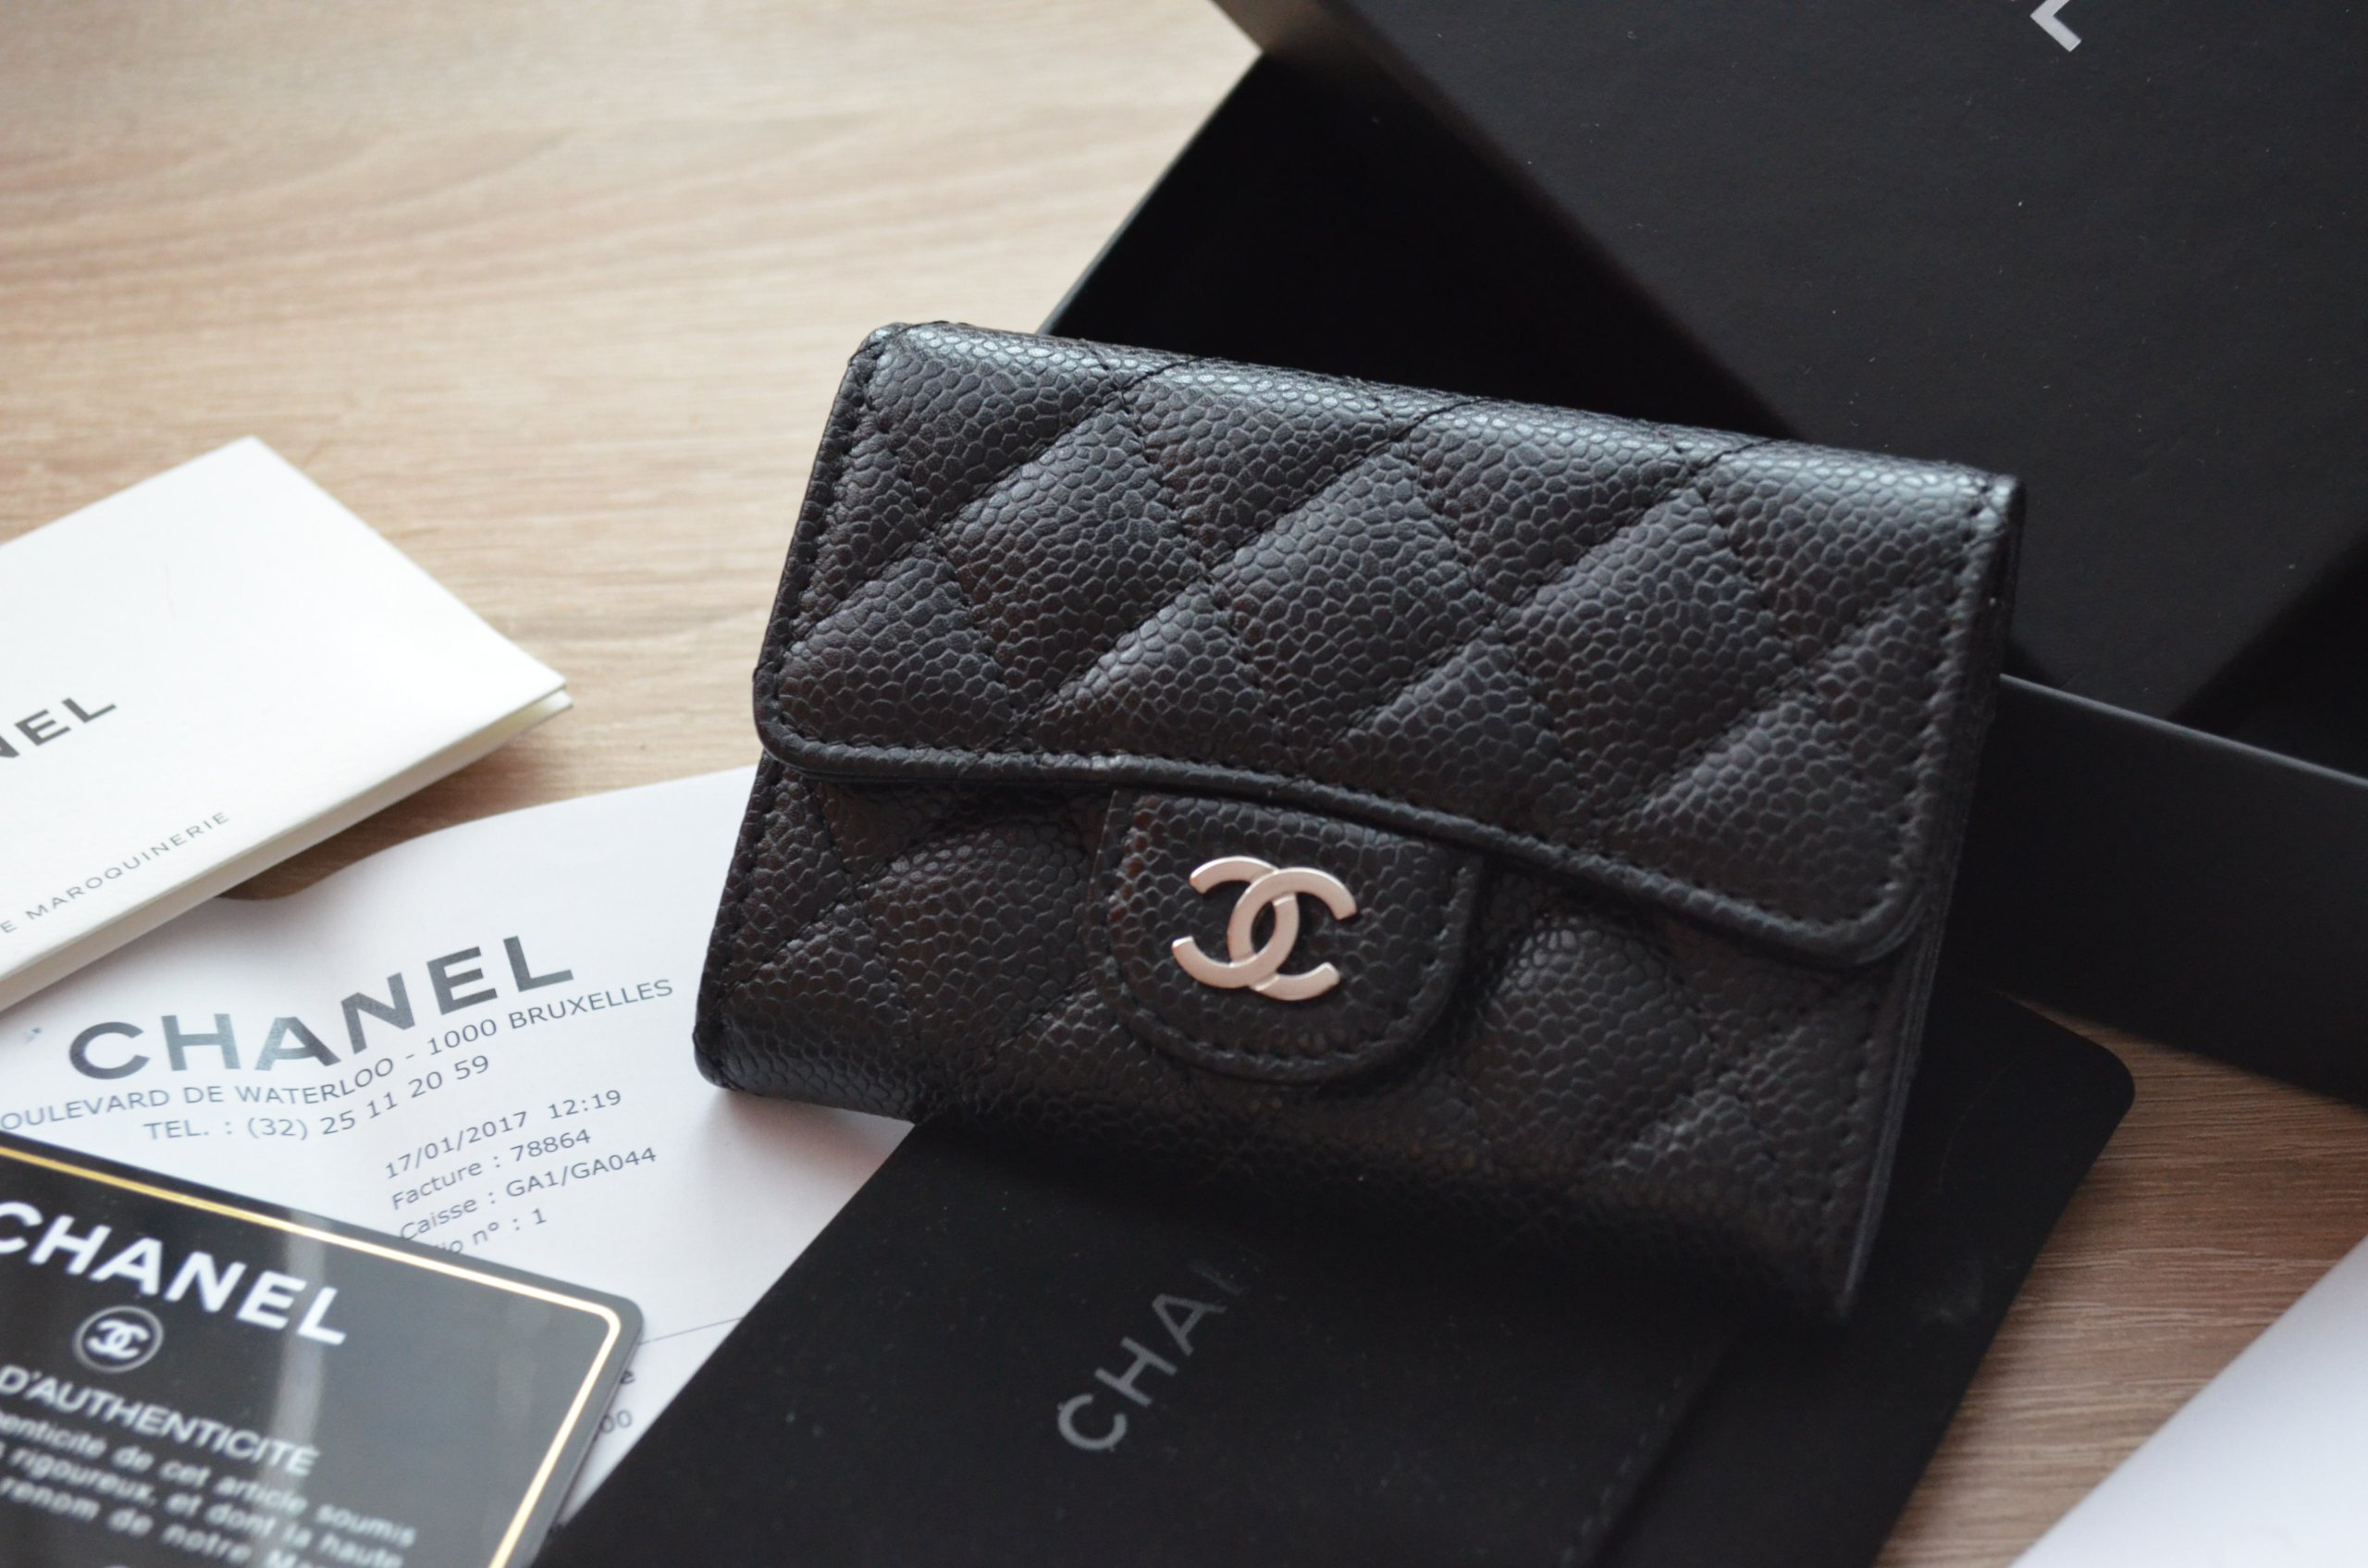 443a0b013fae2 CHANEL CARD HOLDER 100% ORYGINALNY Z RACHUNKIEM - 7218767221 ...